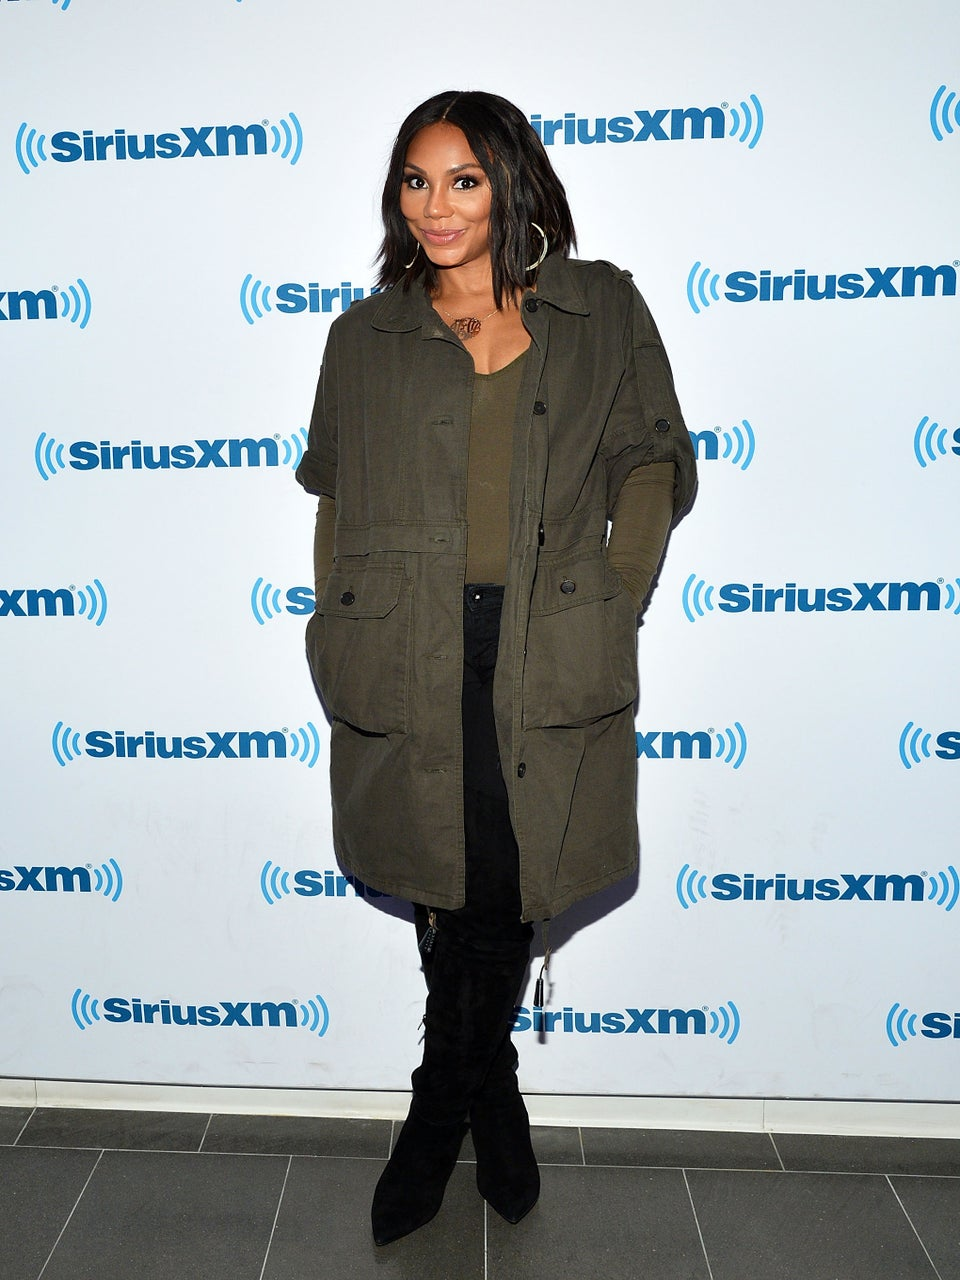 Tamar Braxton Spills The Tea On Her Firing from 'The Real' in New Interview